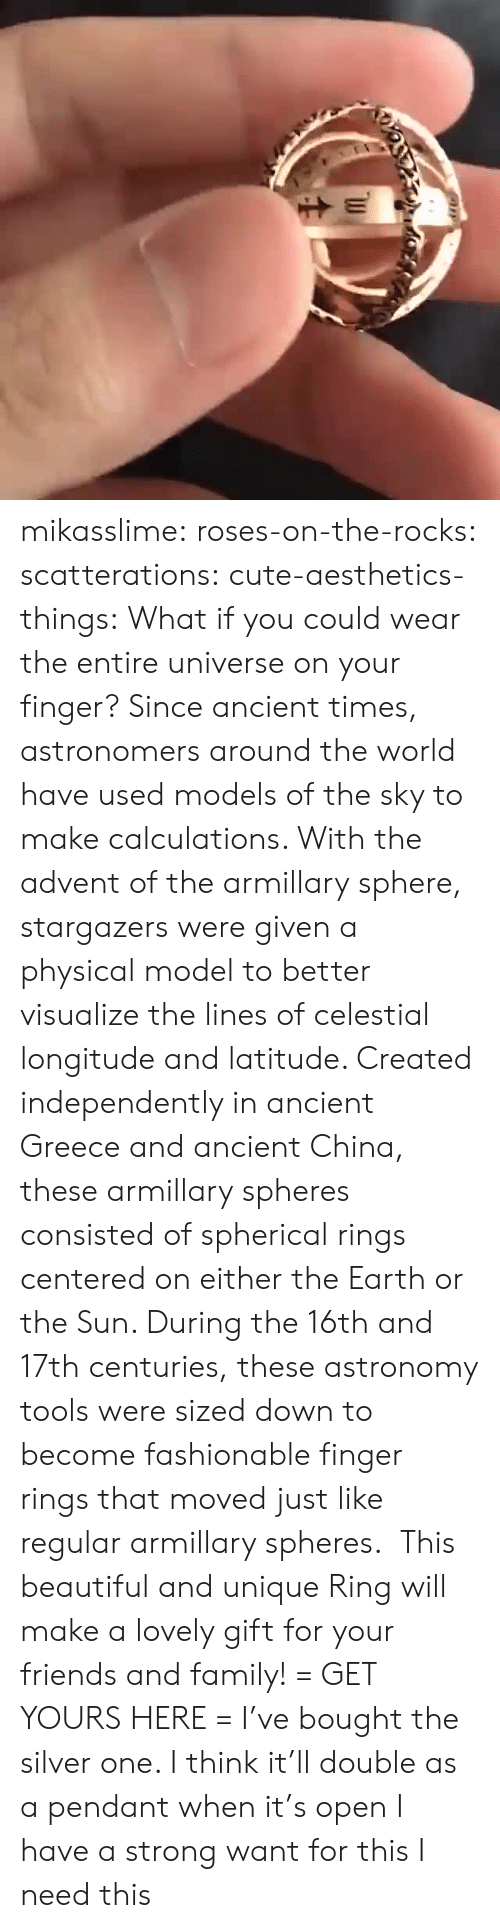 ancient greece: mikasslime:  roses-on-the-rocks:  scatterations:  cute-aesthetics-things: What if you could wear the entire universe on your finger? Since ancient times, astronomers around the world have used models of the sky to make calculations. With the advent of the armillary sphere, stargazers were given a physical model to better visualize the lines of celestial longitude and latitude. Created independently in ancient Greece and ancient China, these armillary spheres consisted of spherical rings centered on either the Earth or the Sun. During the 16th and 17th centuries, these astronomy tools were sized down to become fashionable finger rings that moved just like regular armillary spheres. This beautiful and unique Ring will make a lovely gift for your friends and family! = GET YOURS HERE =   I've bought the silver one. I think it'll double as a pendant when it's open   I have a strong want for this   I need this